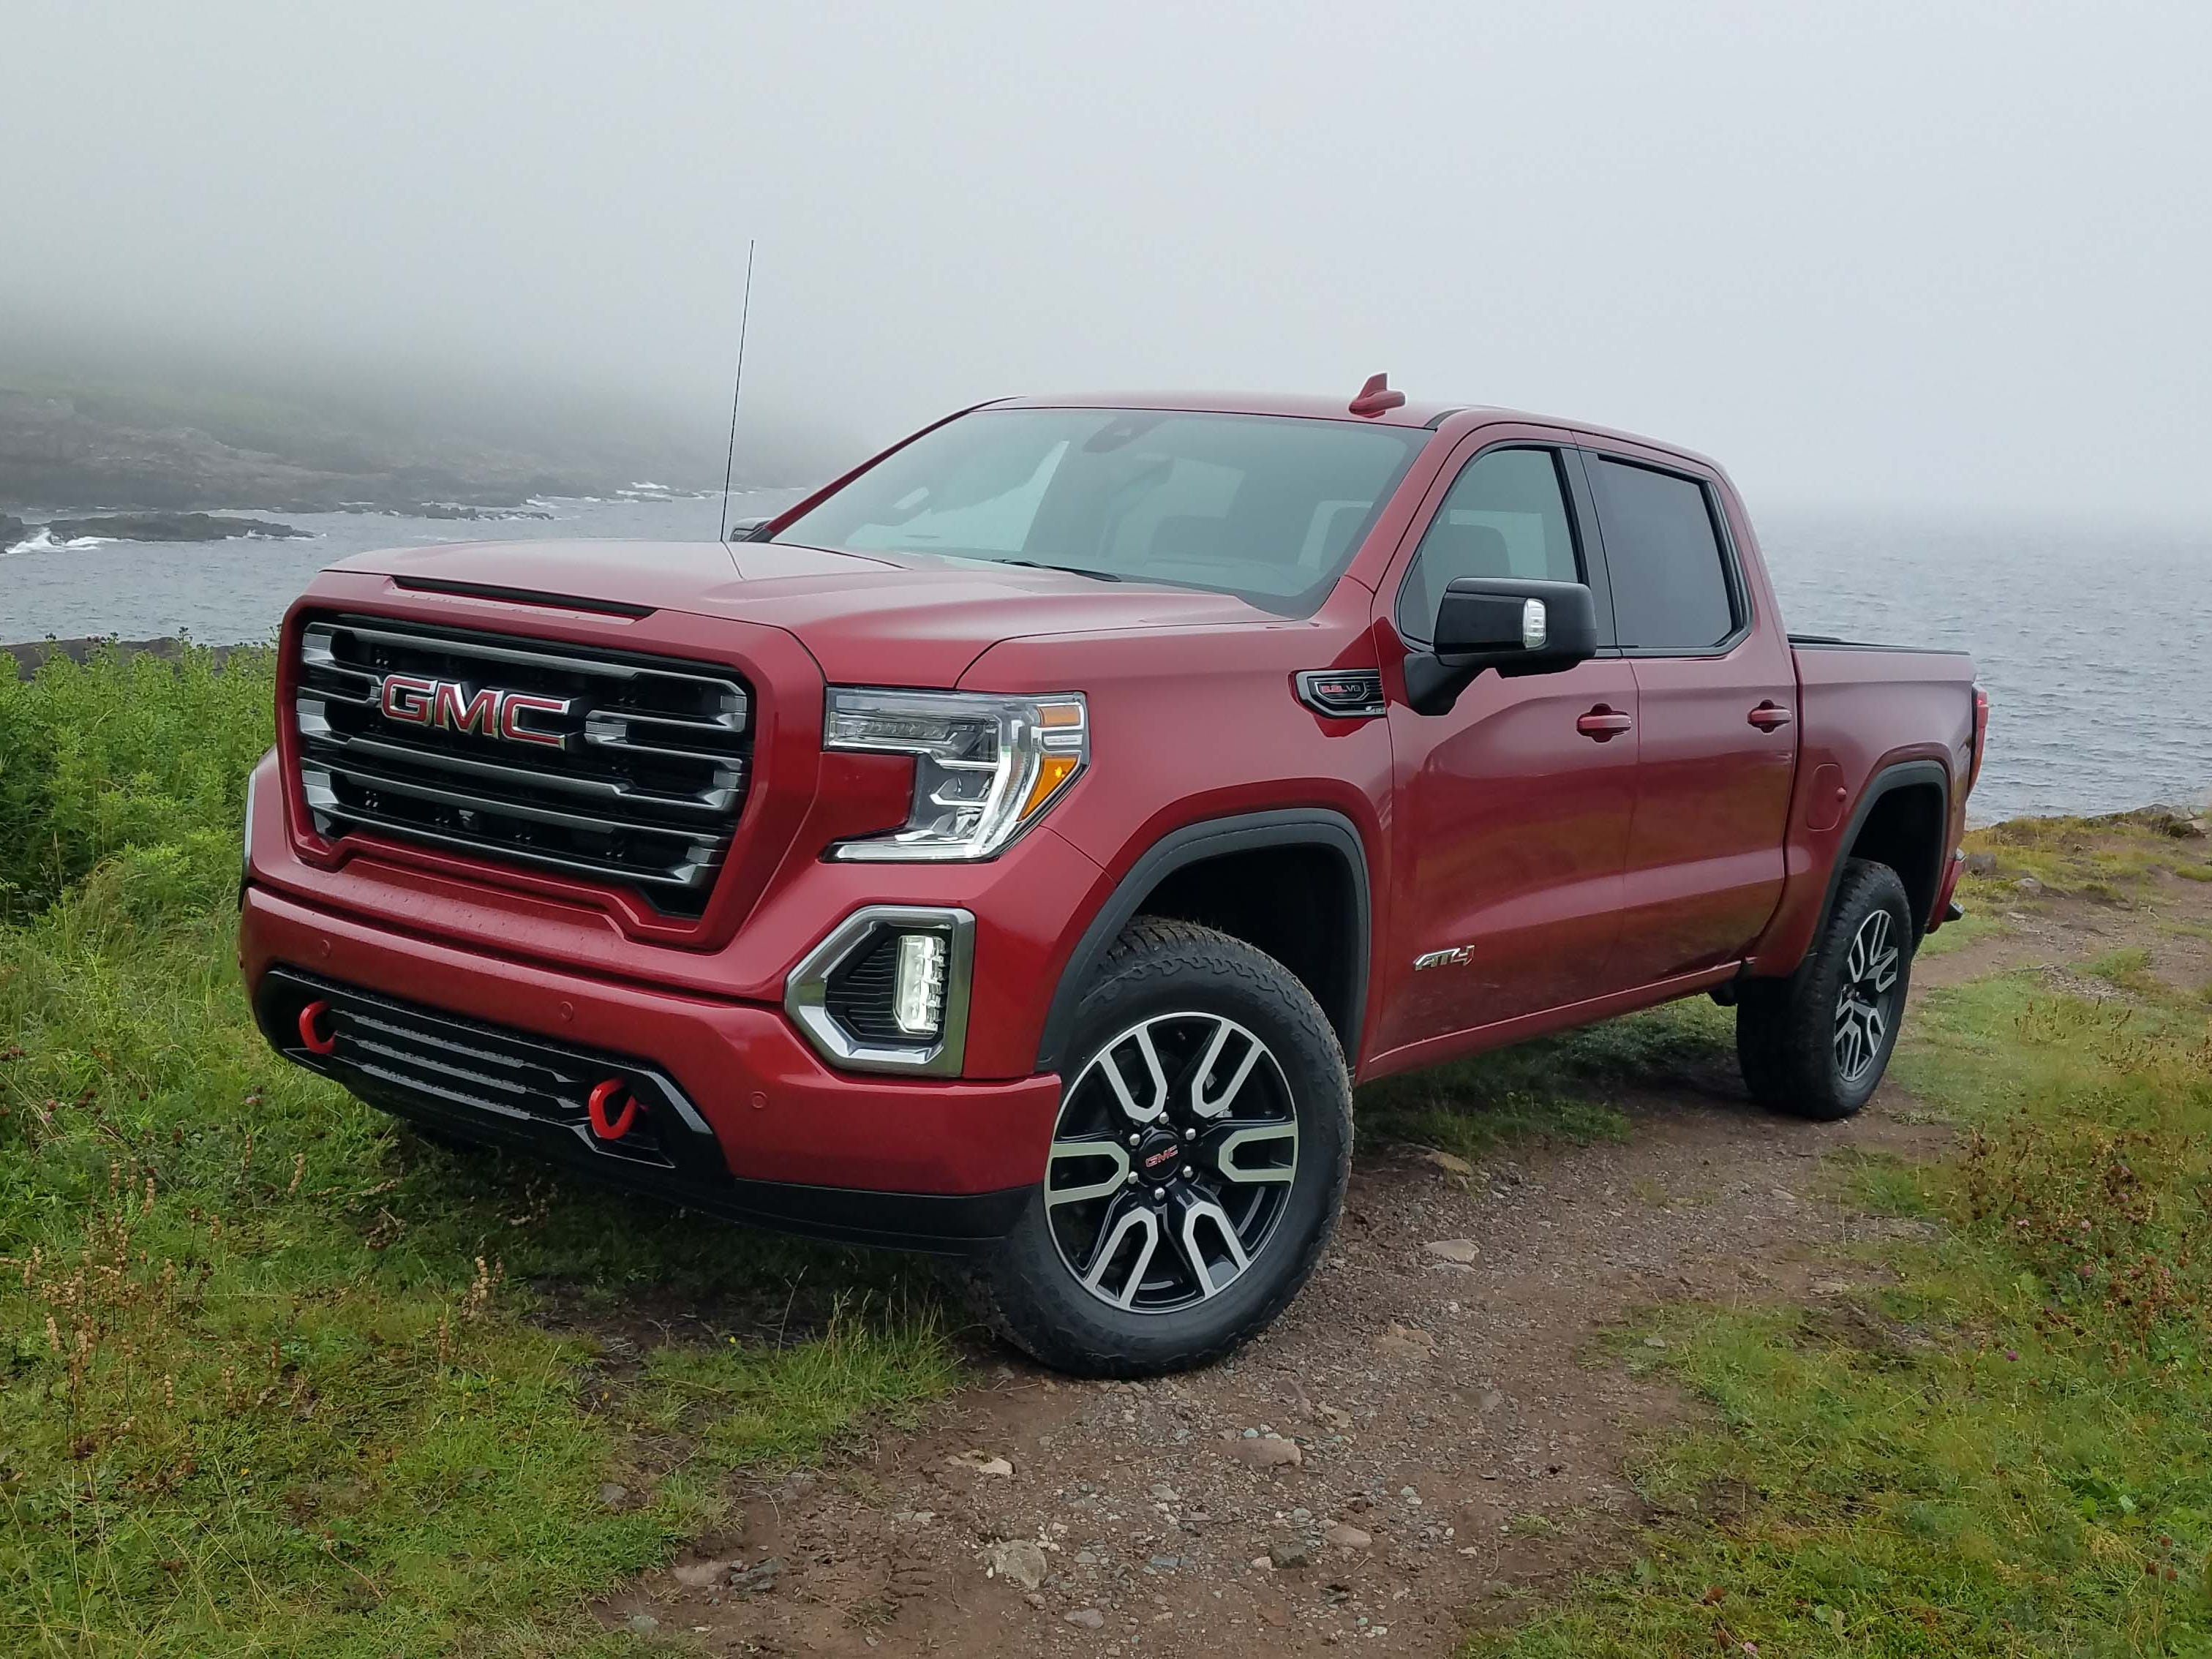 Truck of the Year nominee: The GMC Sierra, seen here in its new top-trim badge -- the AT4. The off-road trim gives the Denali luxury but with a rugged edge for outdoorsy buyers.